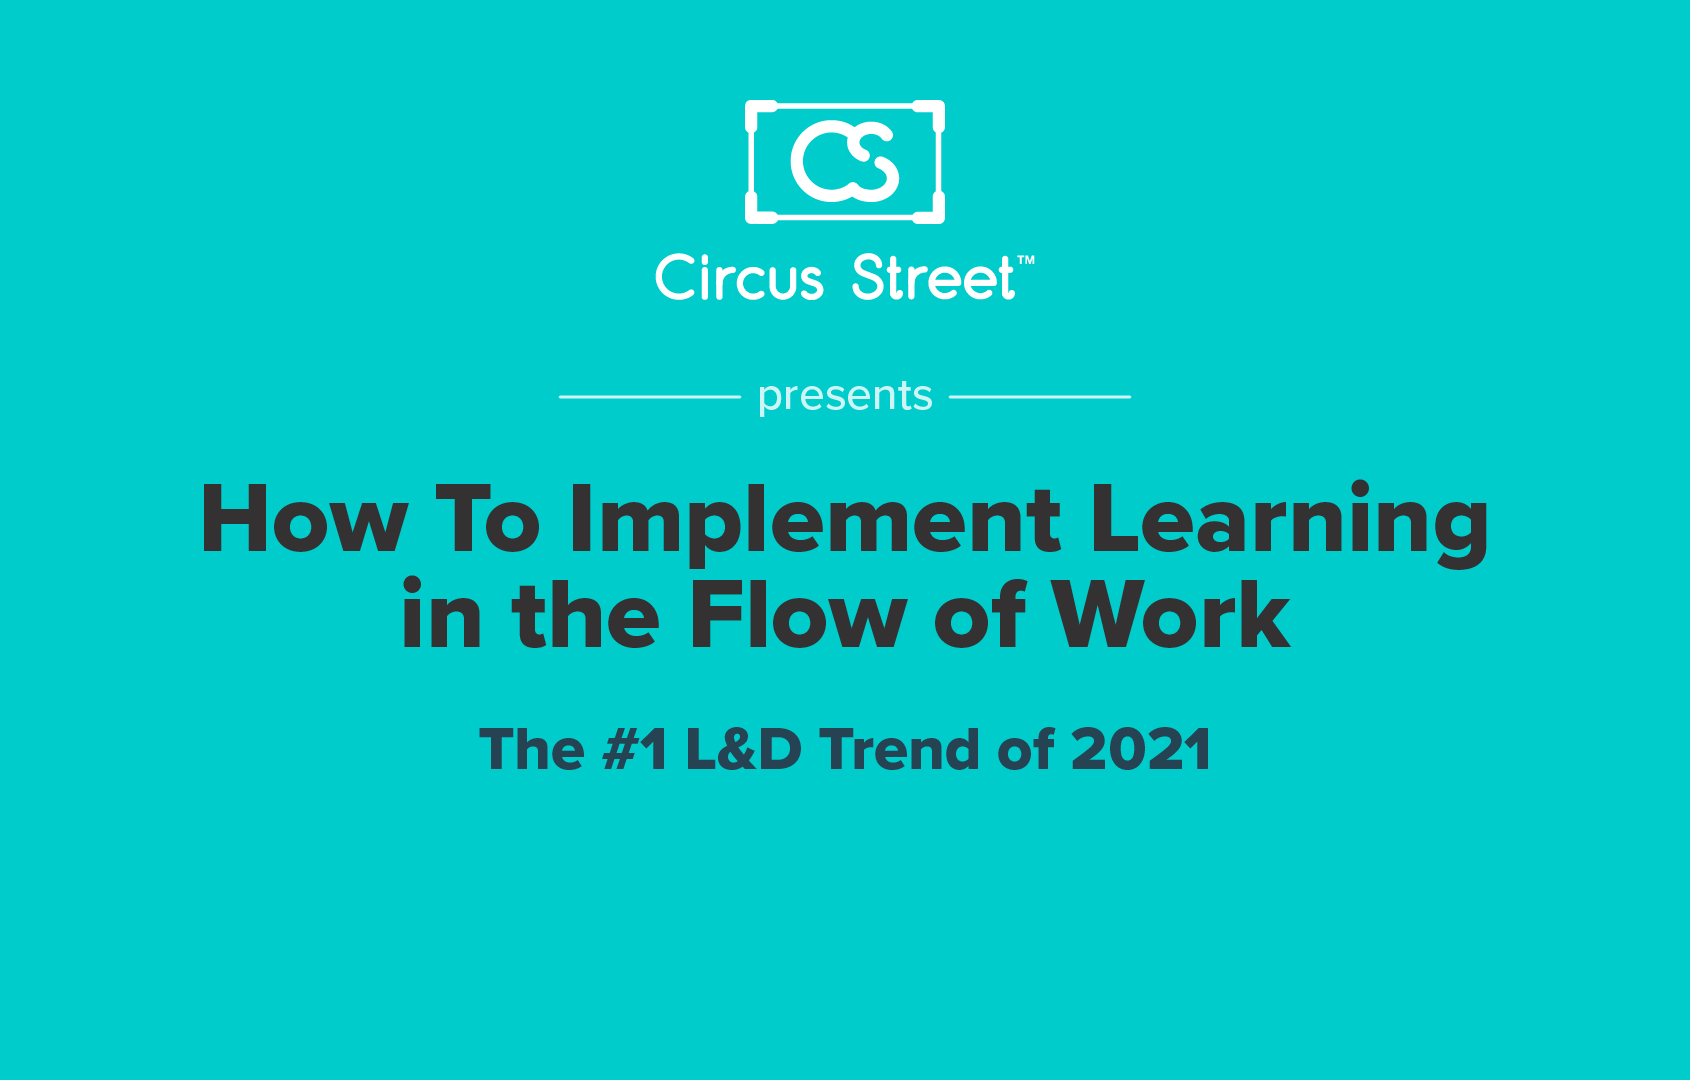 How to Implement Learning in the Flow of Work